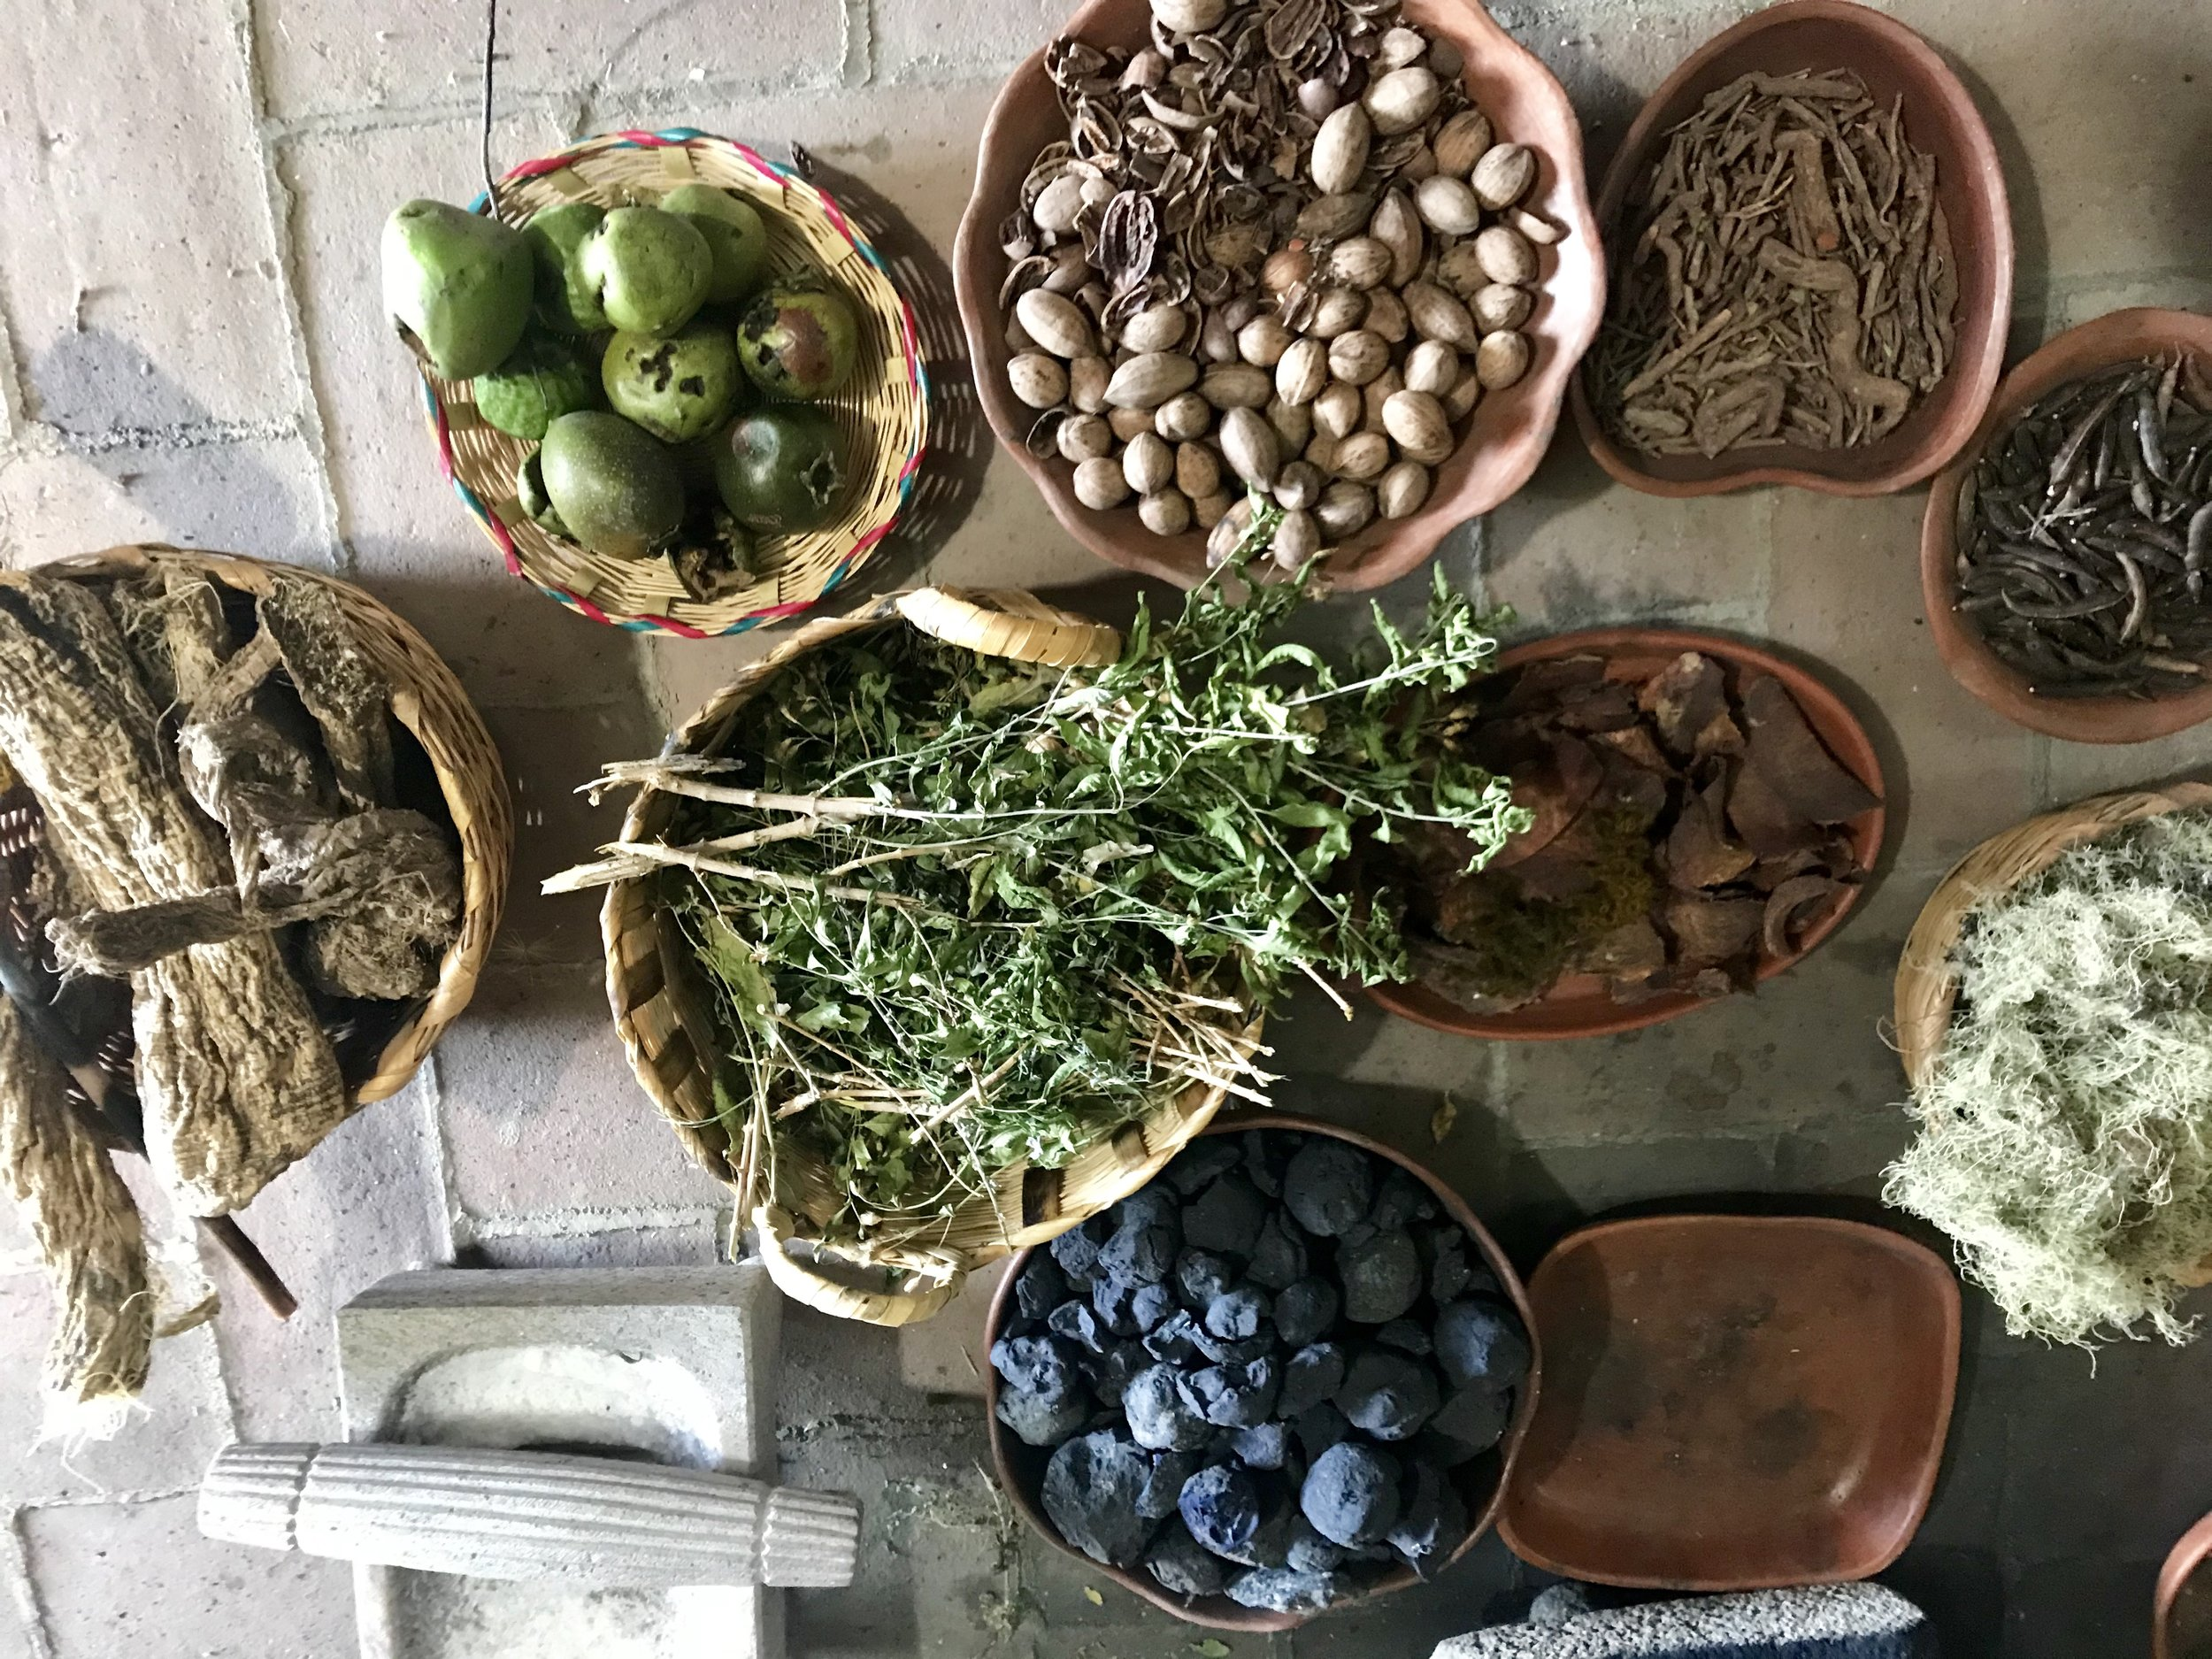 Here are more of the ingredients of these natural dyes. Interestingly, although the traditions are ancient, the Zapotecs (who each speak a different dialect, from village to village) make these gorgeous rugs and are continuously developing new natural dyes and colors.